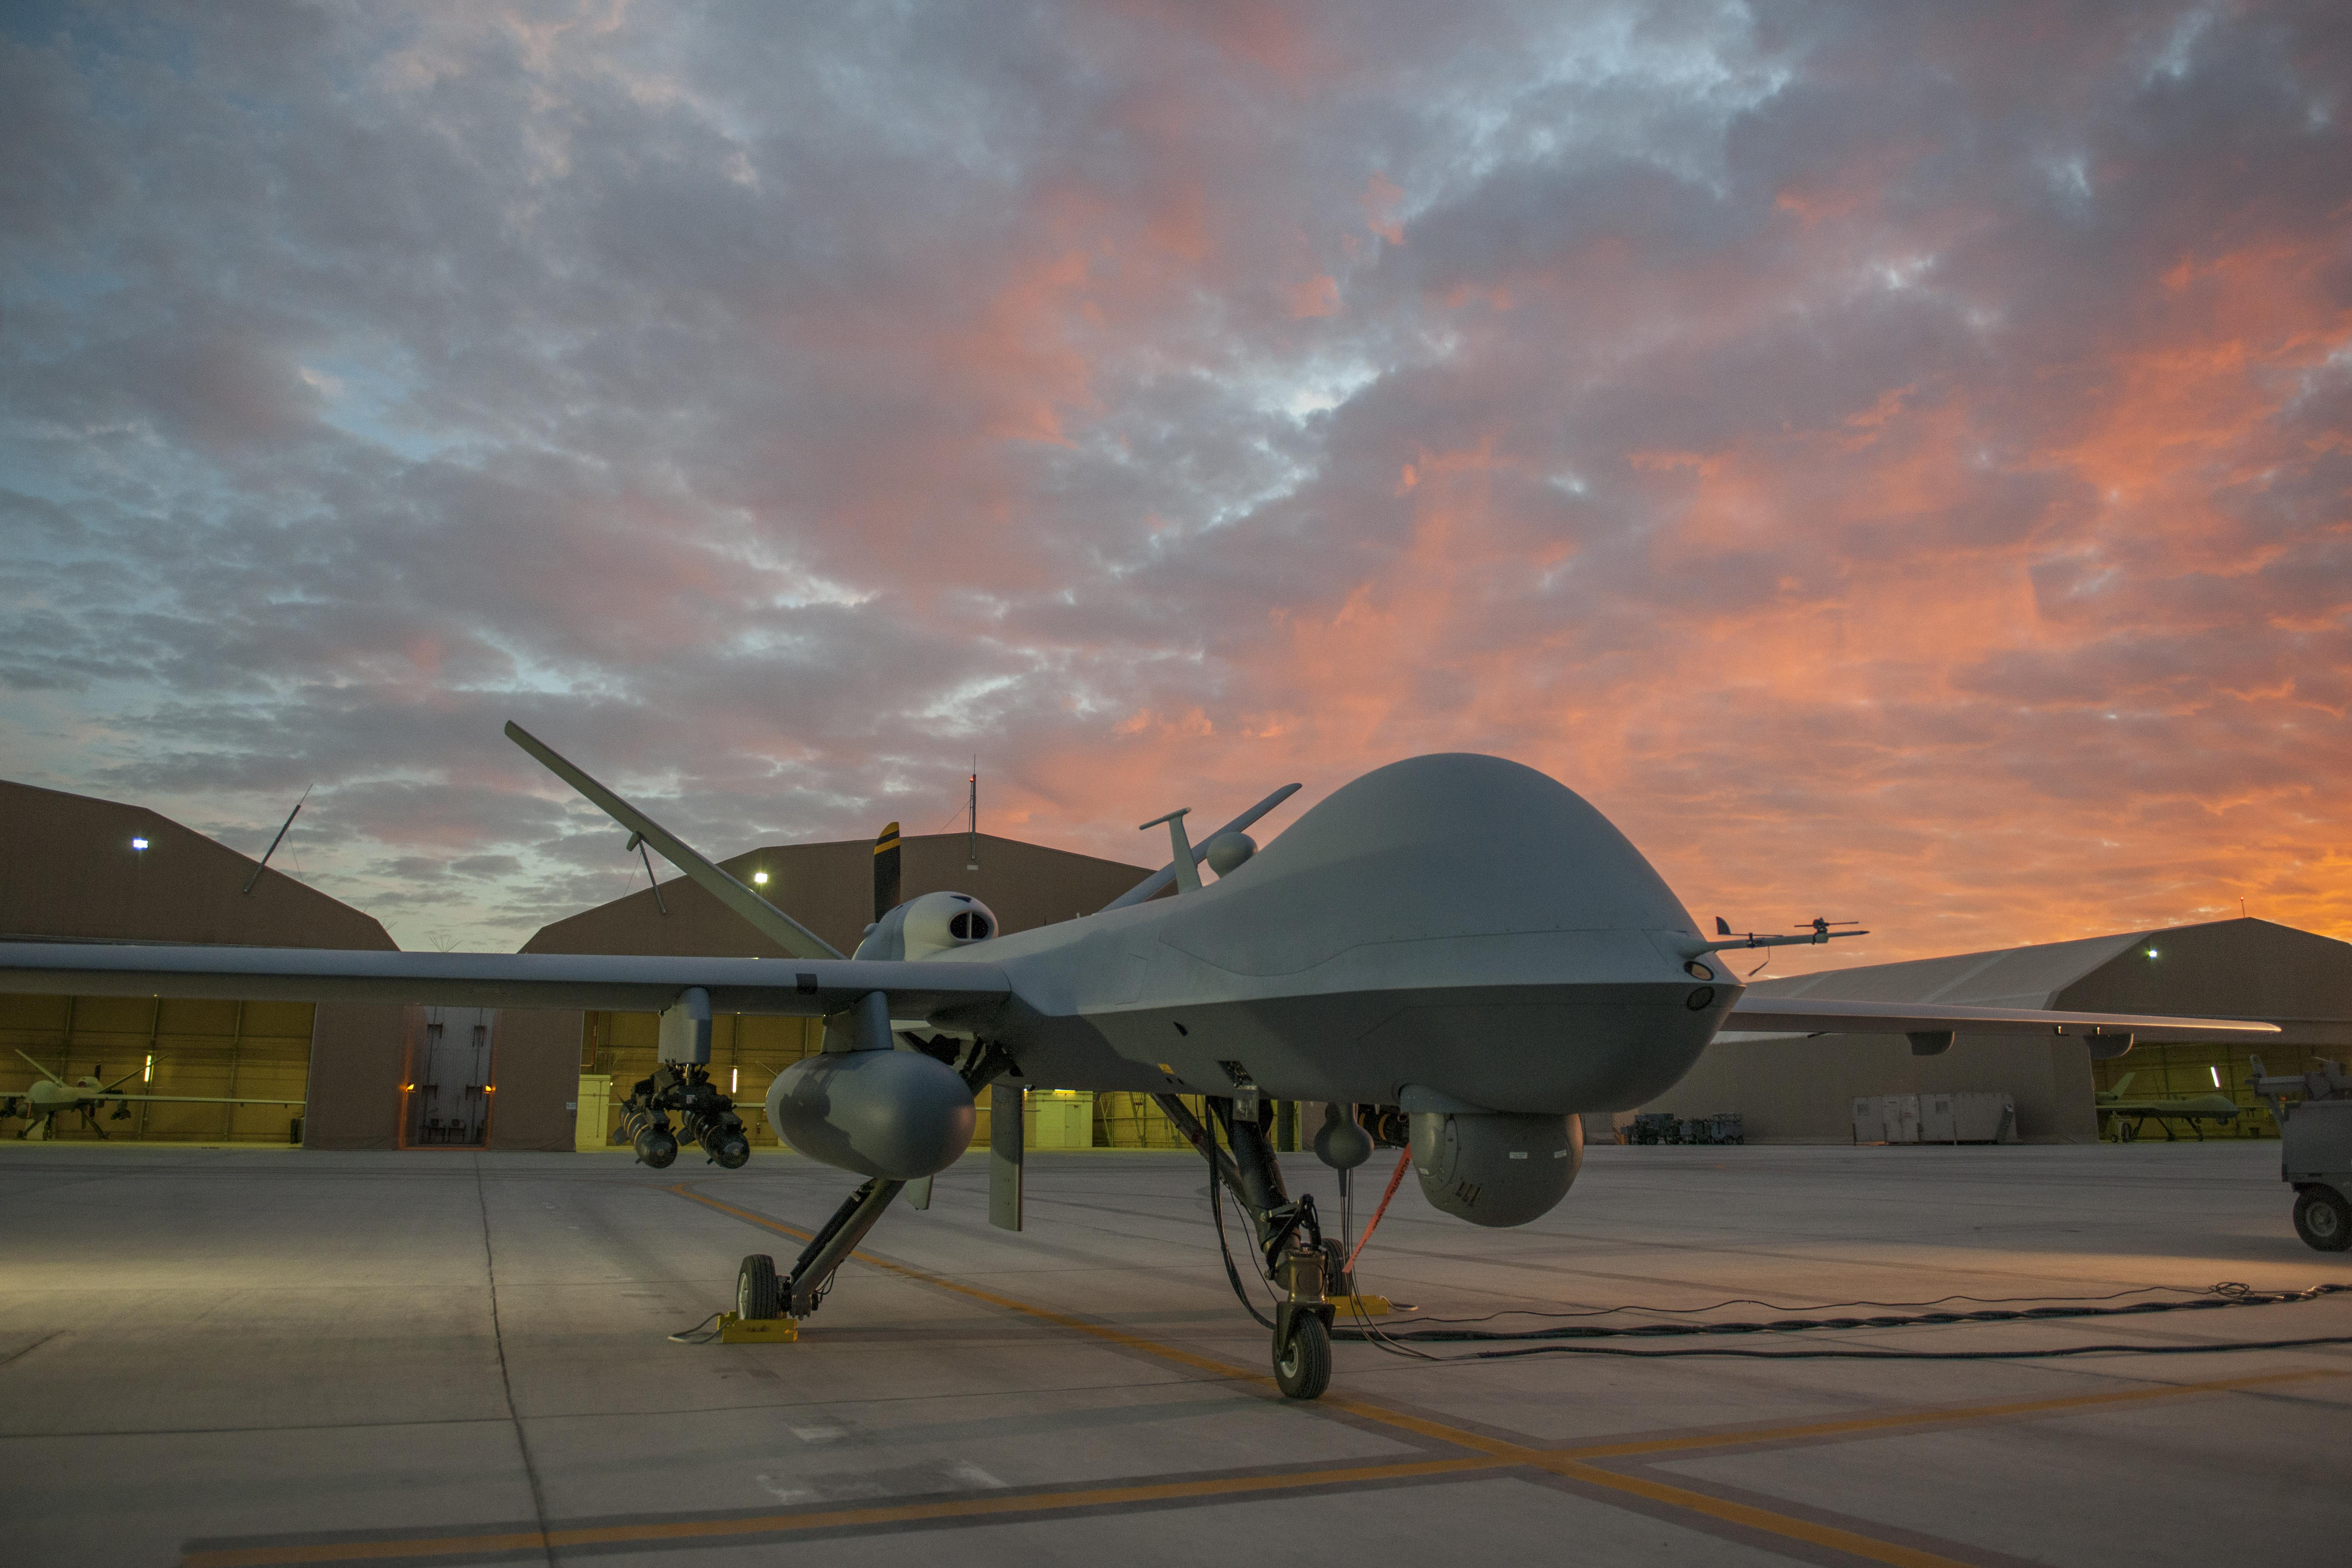 mq 9 reaper crash with Mq 9 Crashes In Afghanistan on Reaper Drone Vs Predator Drone moreover 42d Attack Squadron likewise Us Air Force Mq 9 Reaper Drone Crashes Near Bagram Air Field 1735 further Us Air Force Drone additionally News81999.